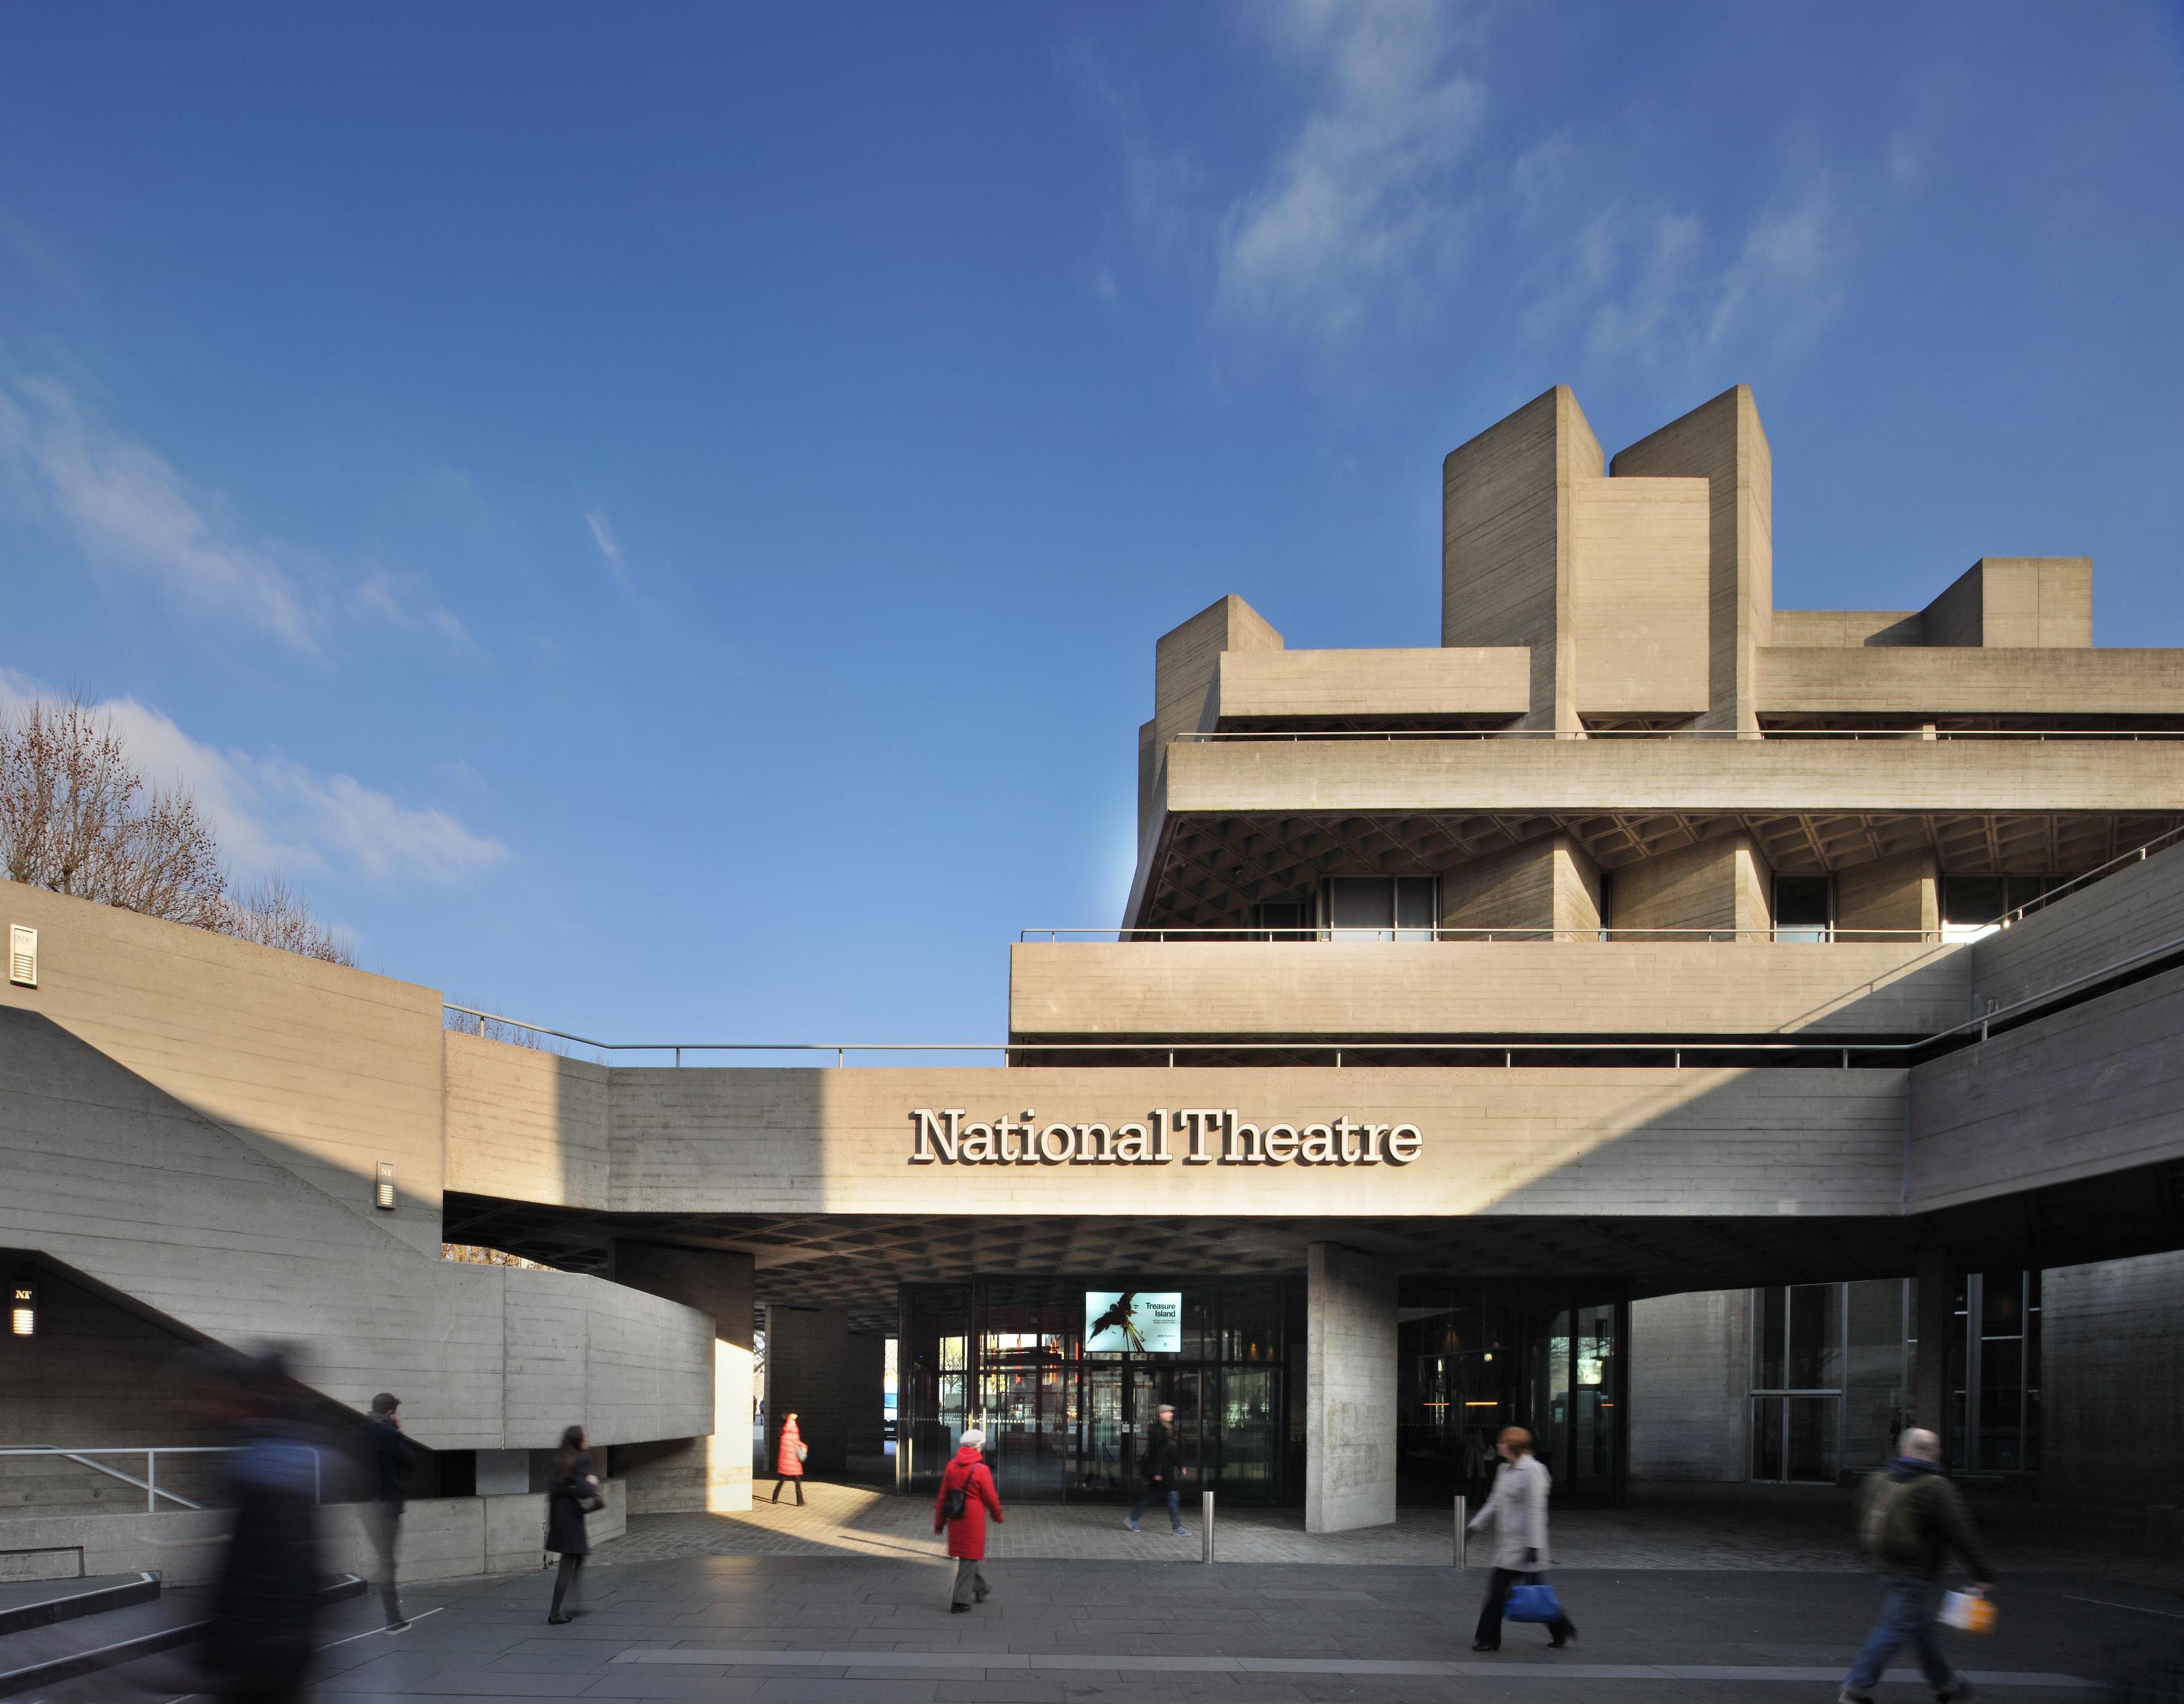 NT Entrance March 2015 2. Photo by Philip Vile